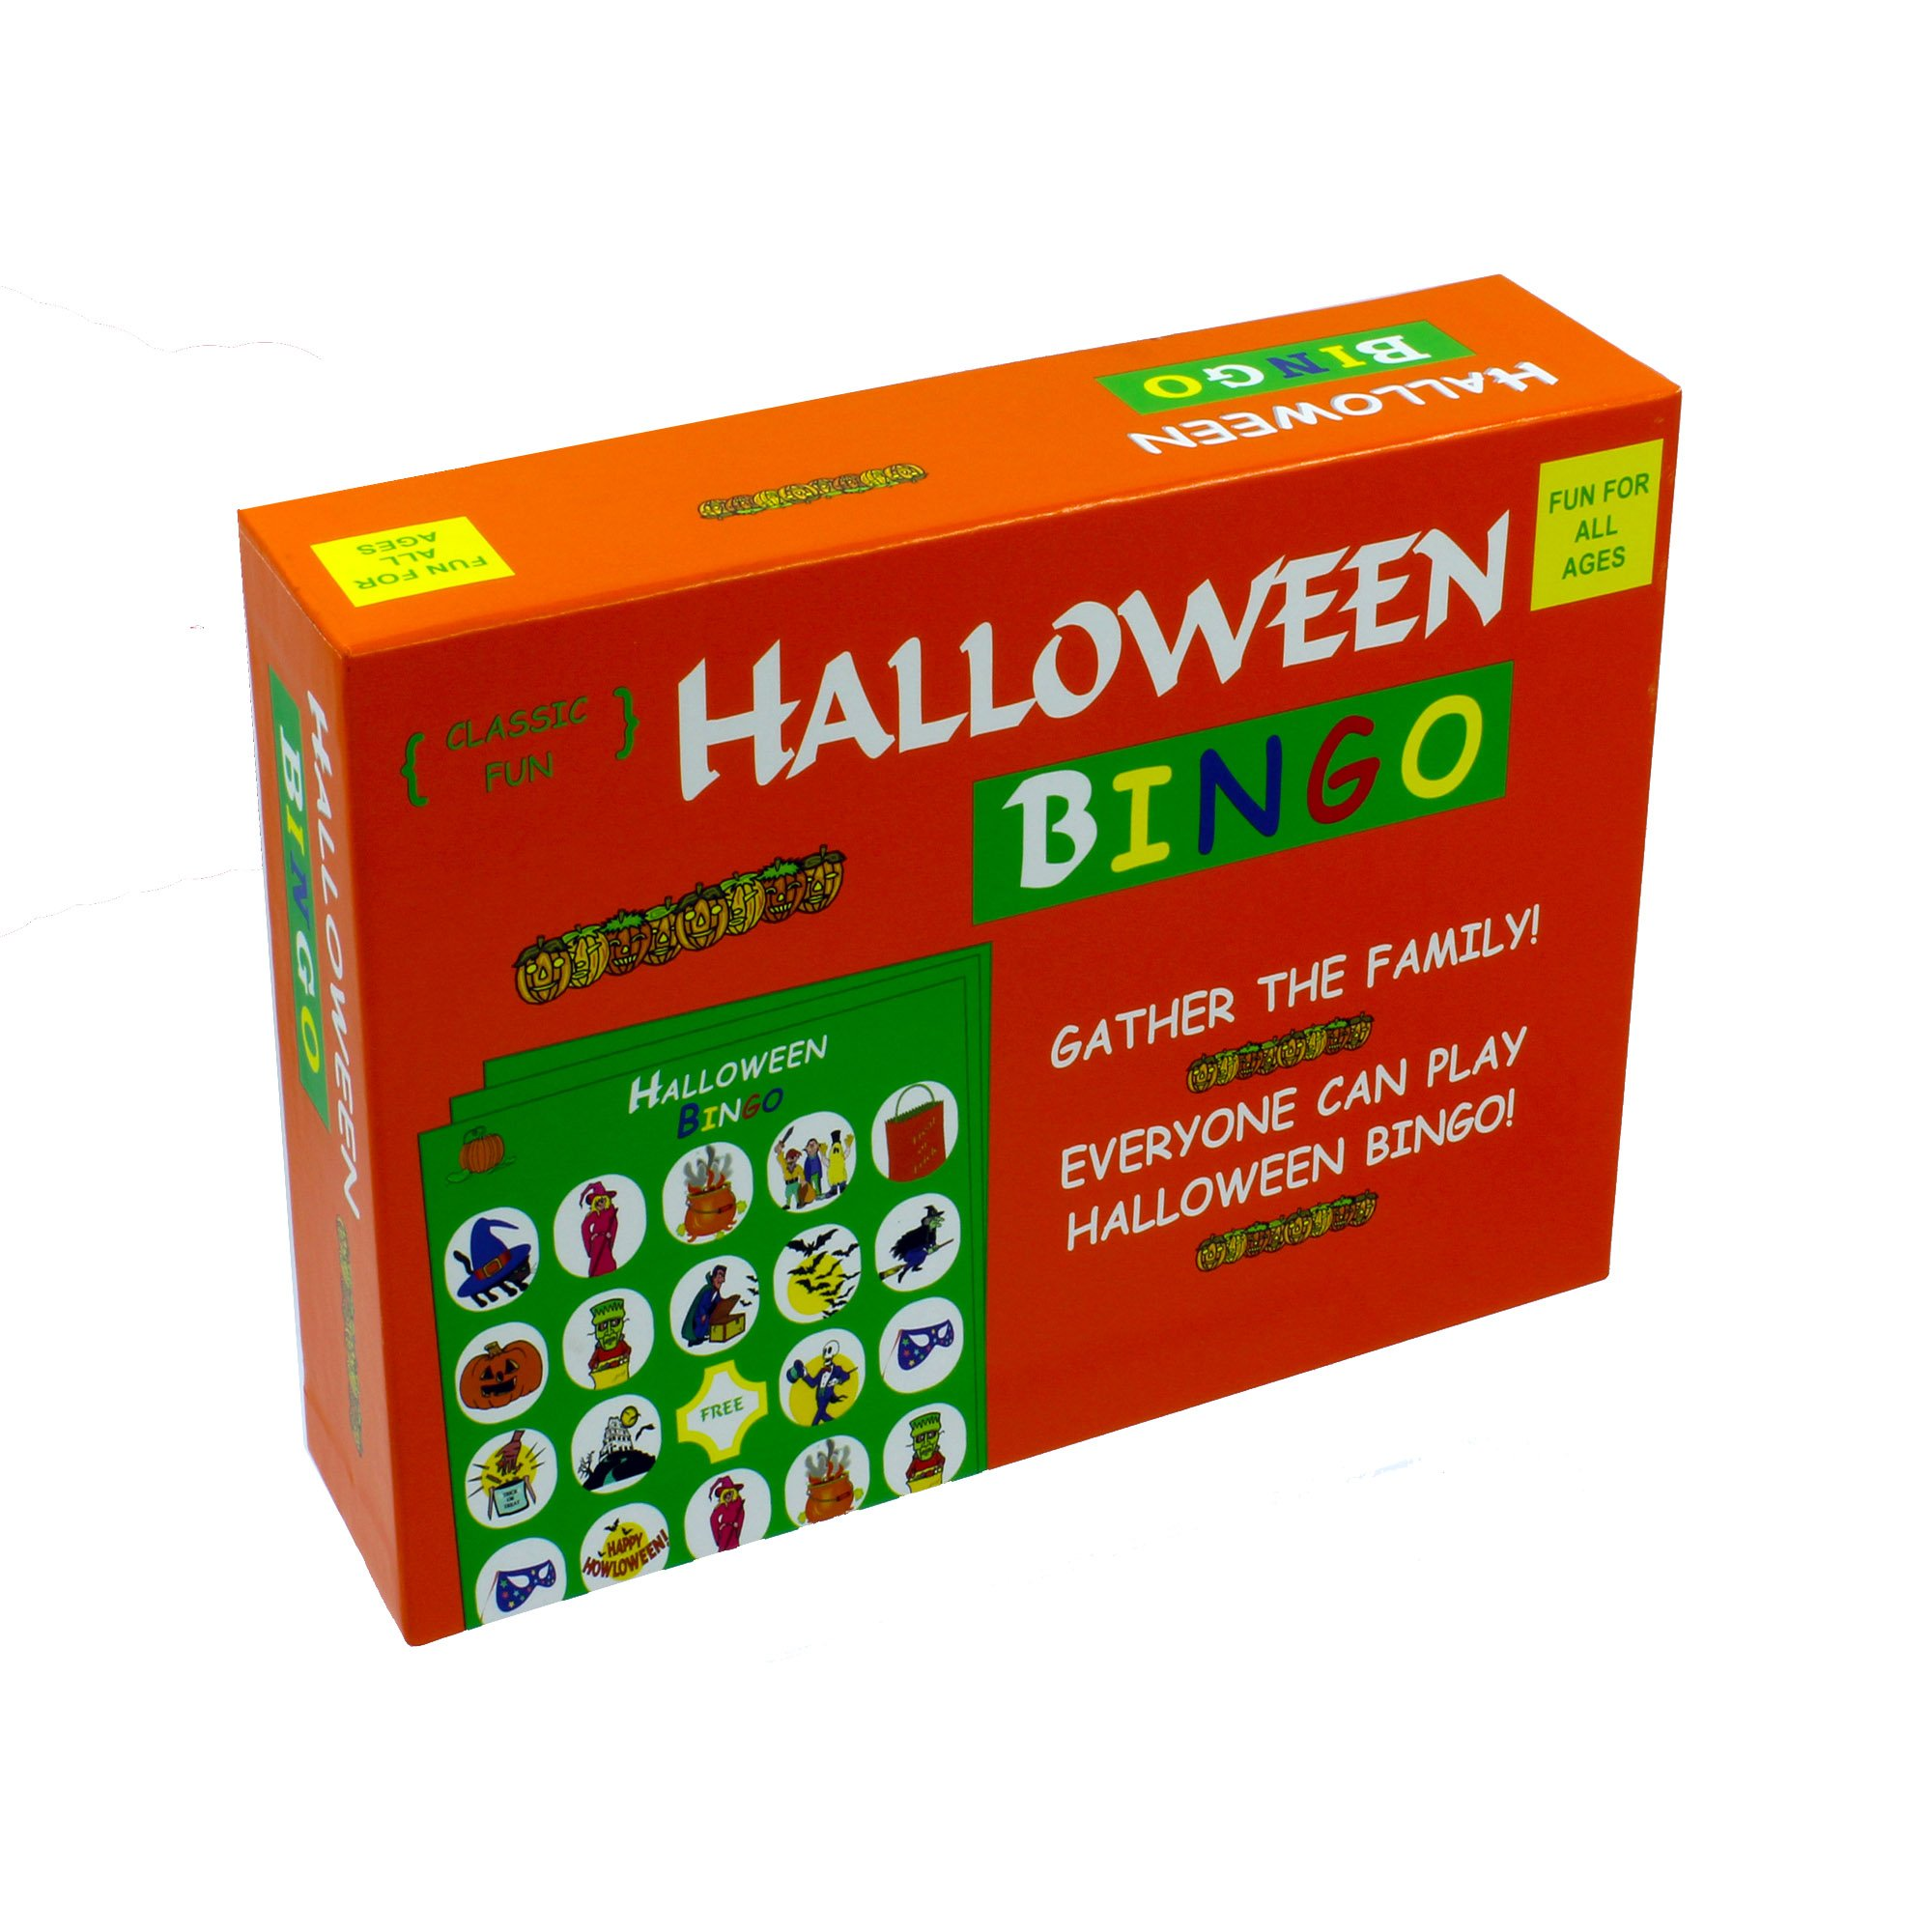 Halloween Bingo - the perfect Halloween Party Game - The Original Halloween Bingo Game with Halloween-themed pieces for a fun-filled Halloween House Party! by Anton Publications